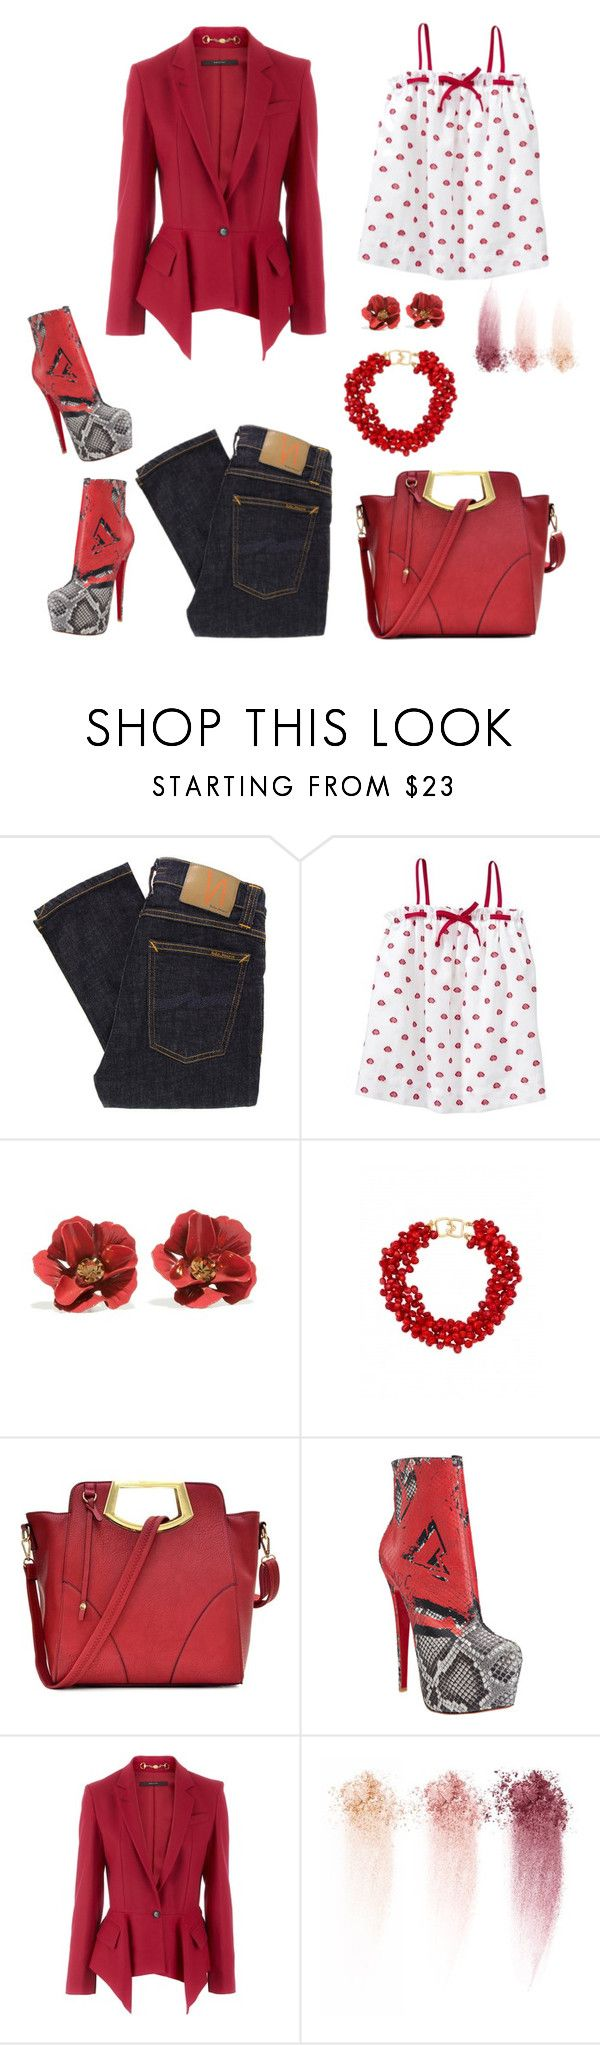 """""""Sans titre #12"""" by carolinesaracosa77 on Polyvore featuring mode, Nudie Jeans Co., Gap, PONO, Dasein, Christian Louboutin, Gucci et NARS Cosmetics"""